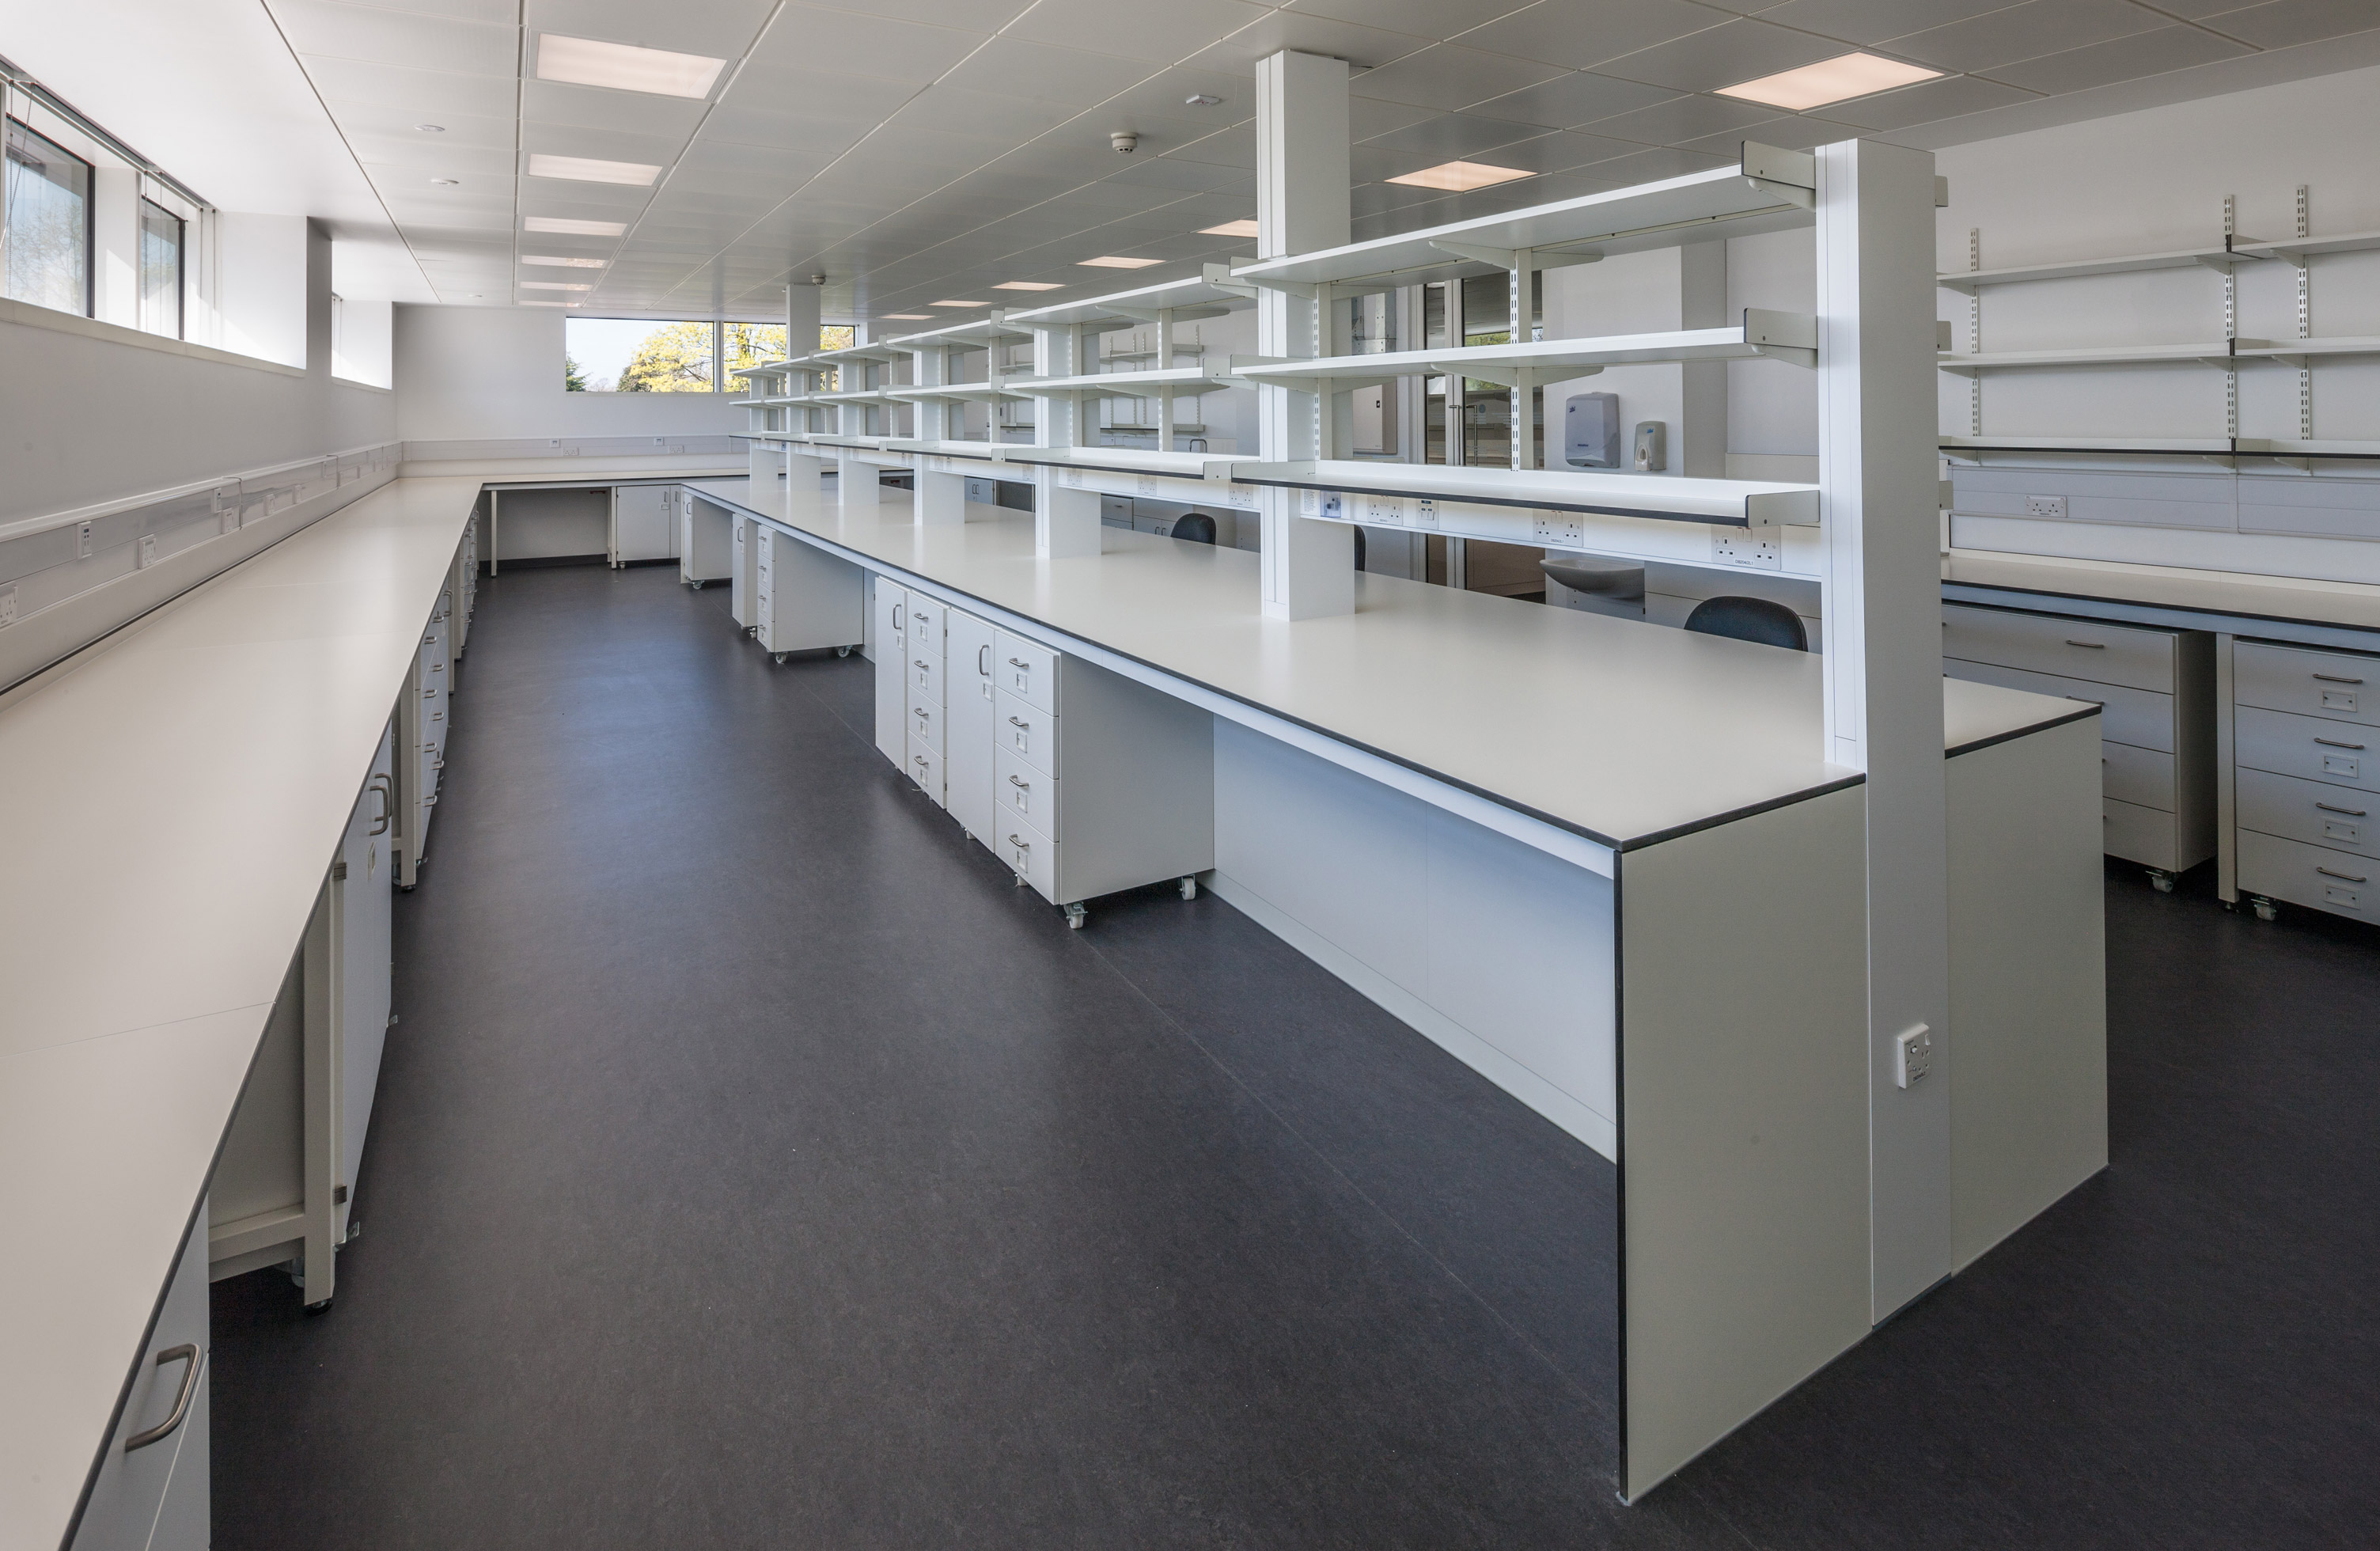 W.E. Marson fixed laboratory furniture